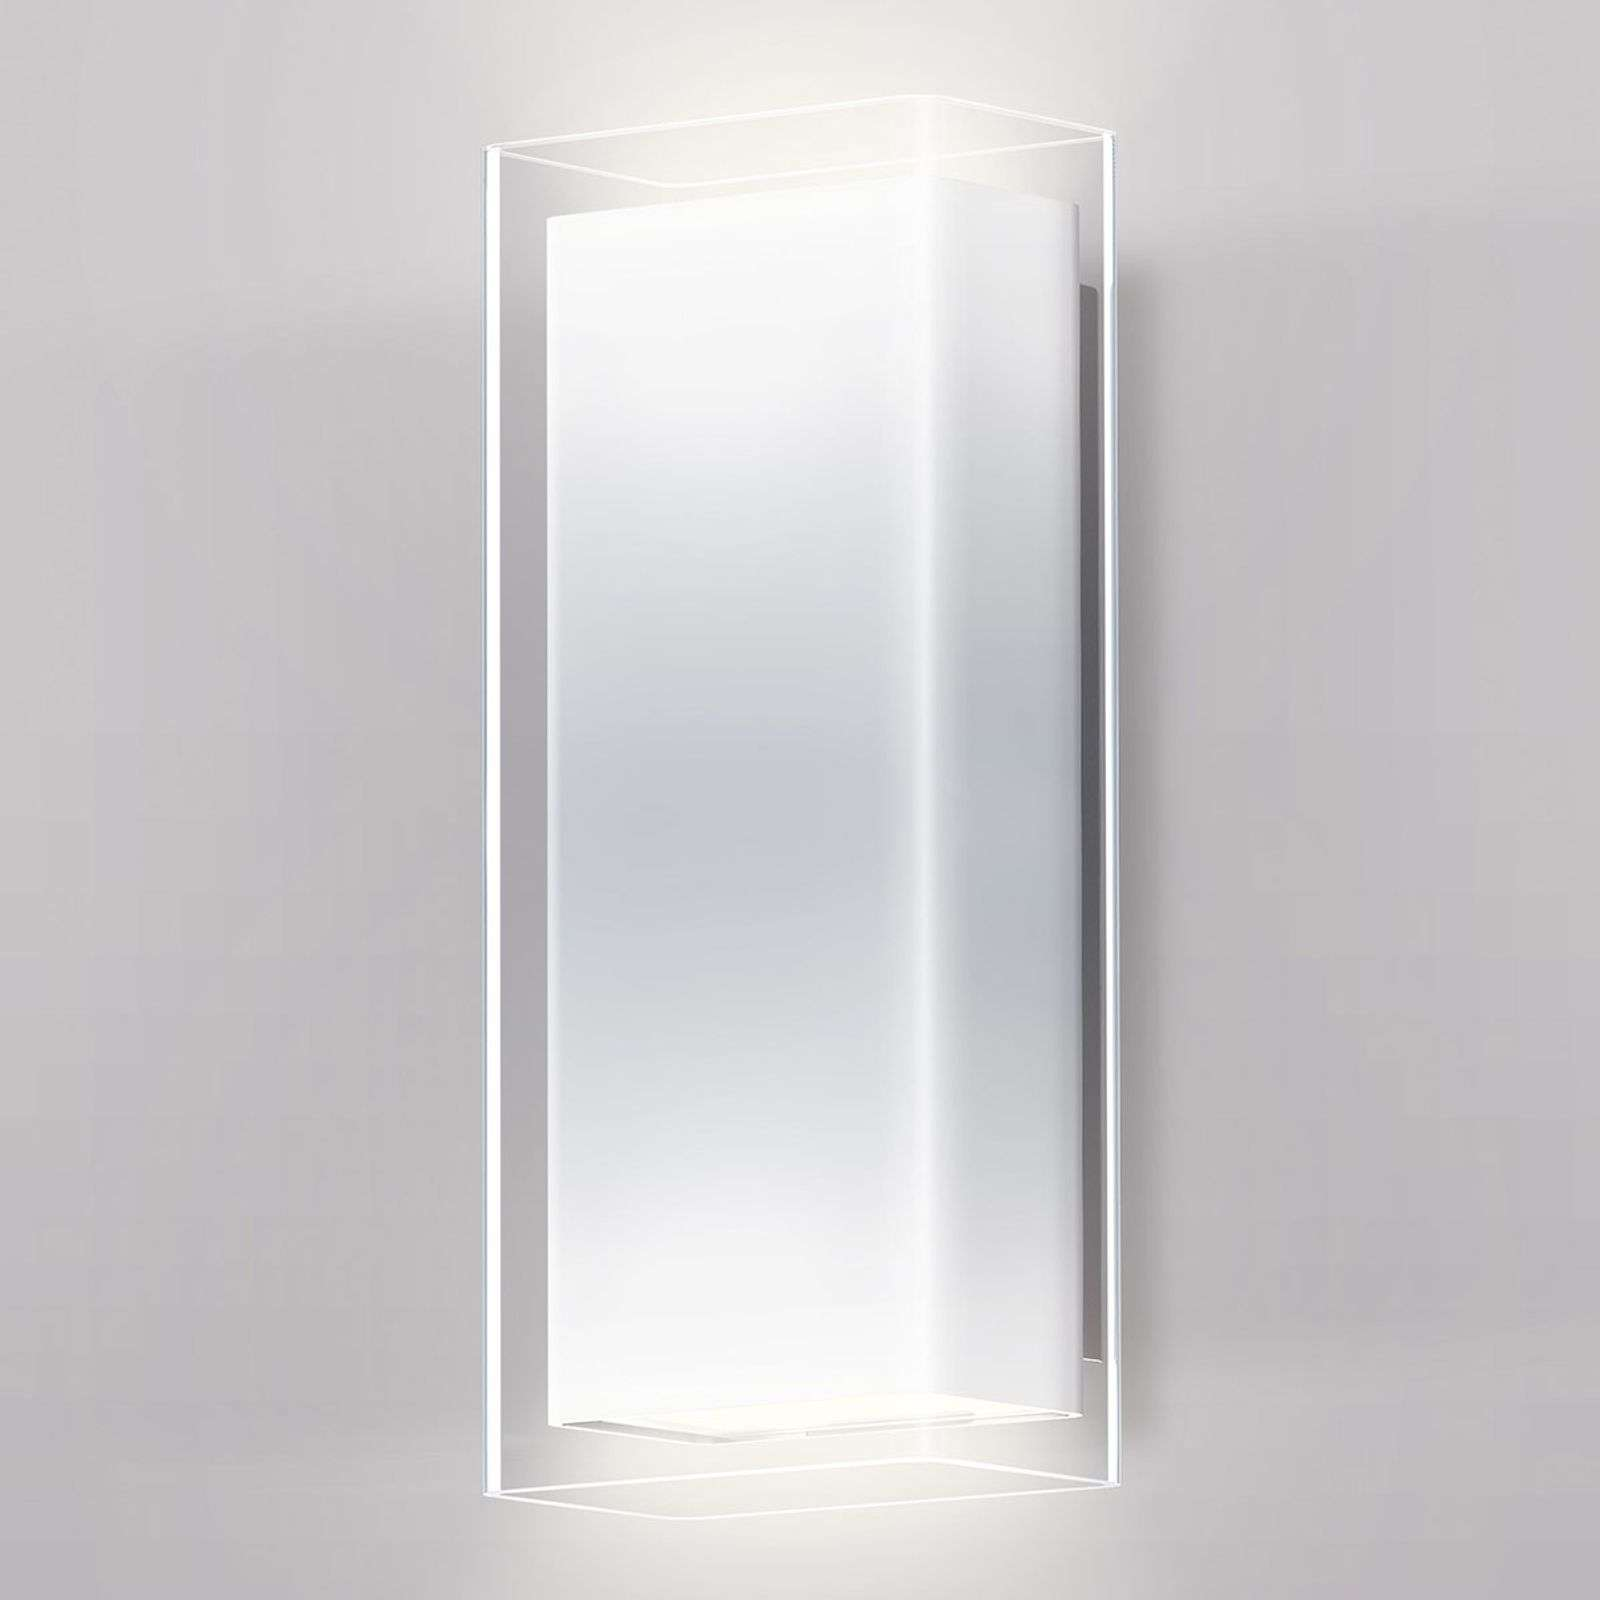 serien.lighting Rod Wall applique LED opale